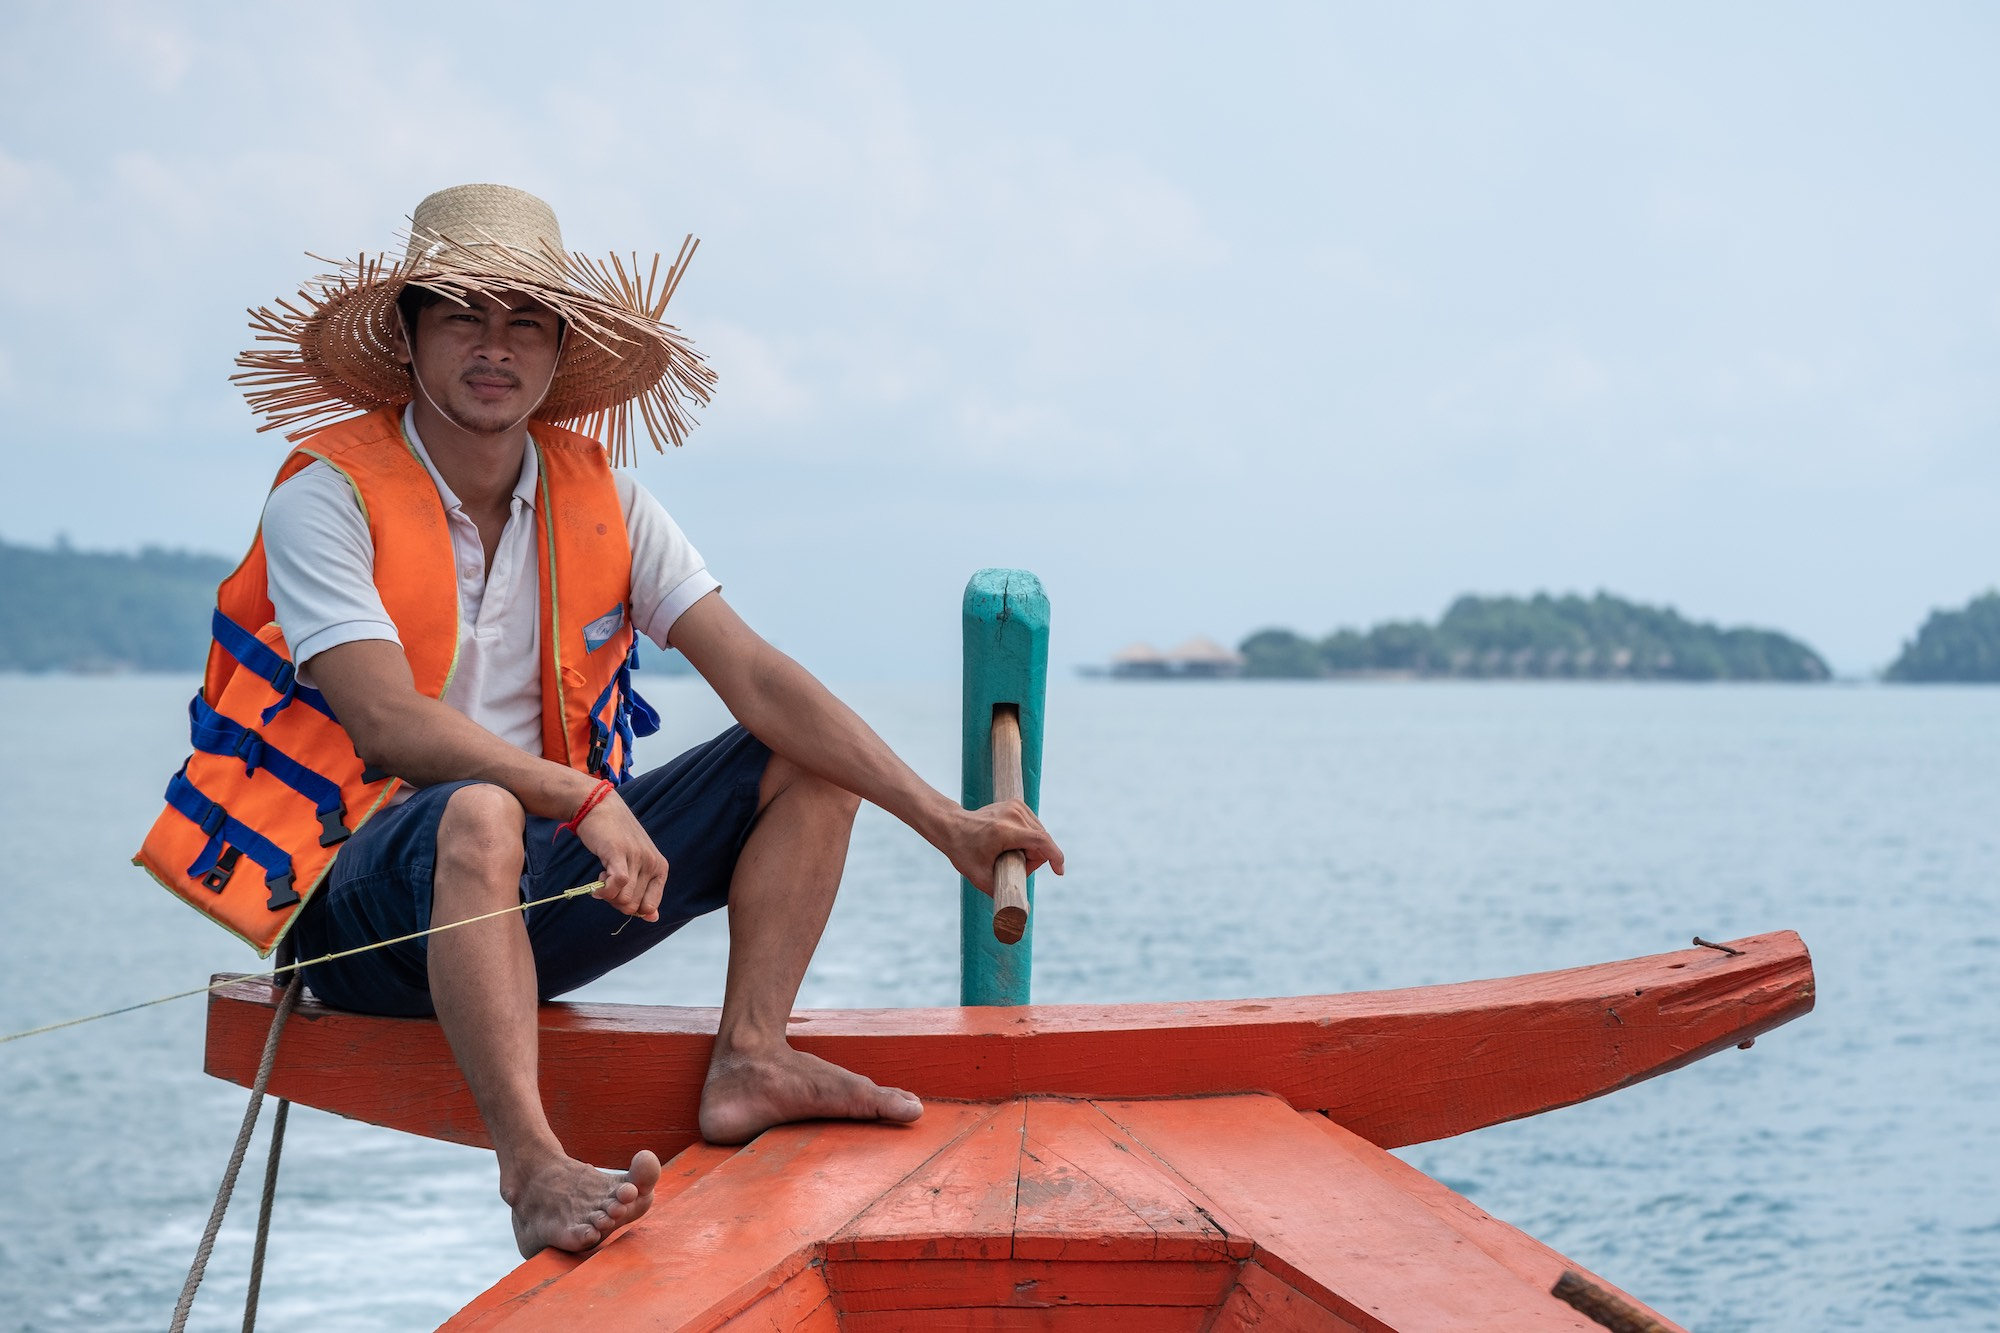 Tourism Travel Photography services commercial Cambodia Song Saa Island